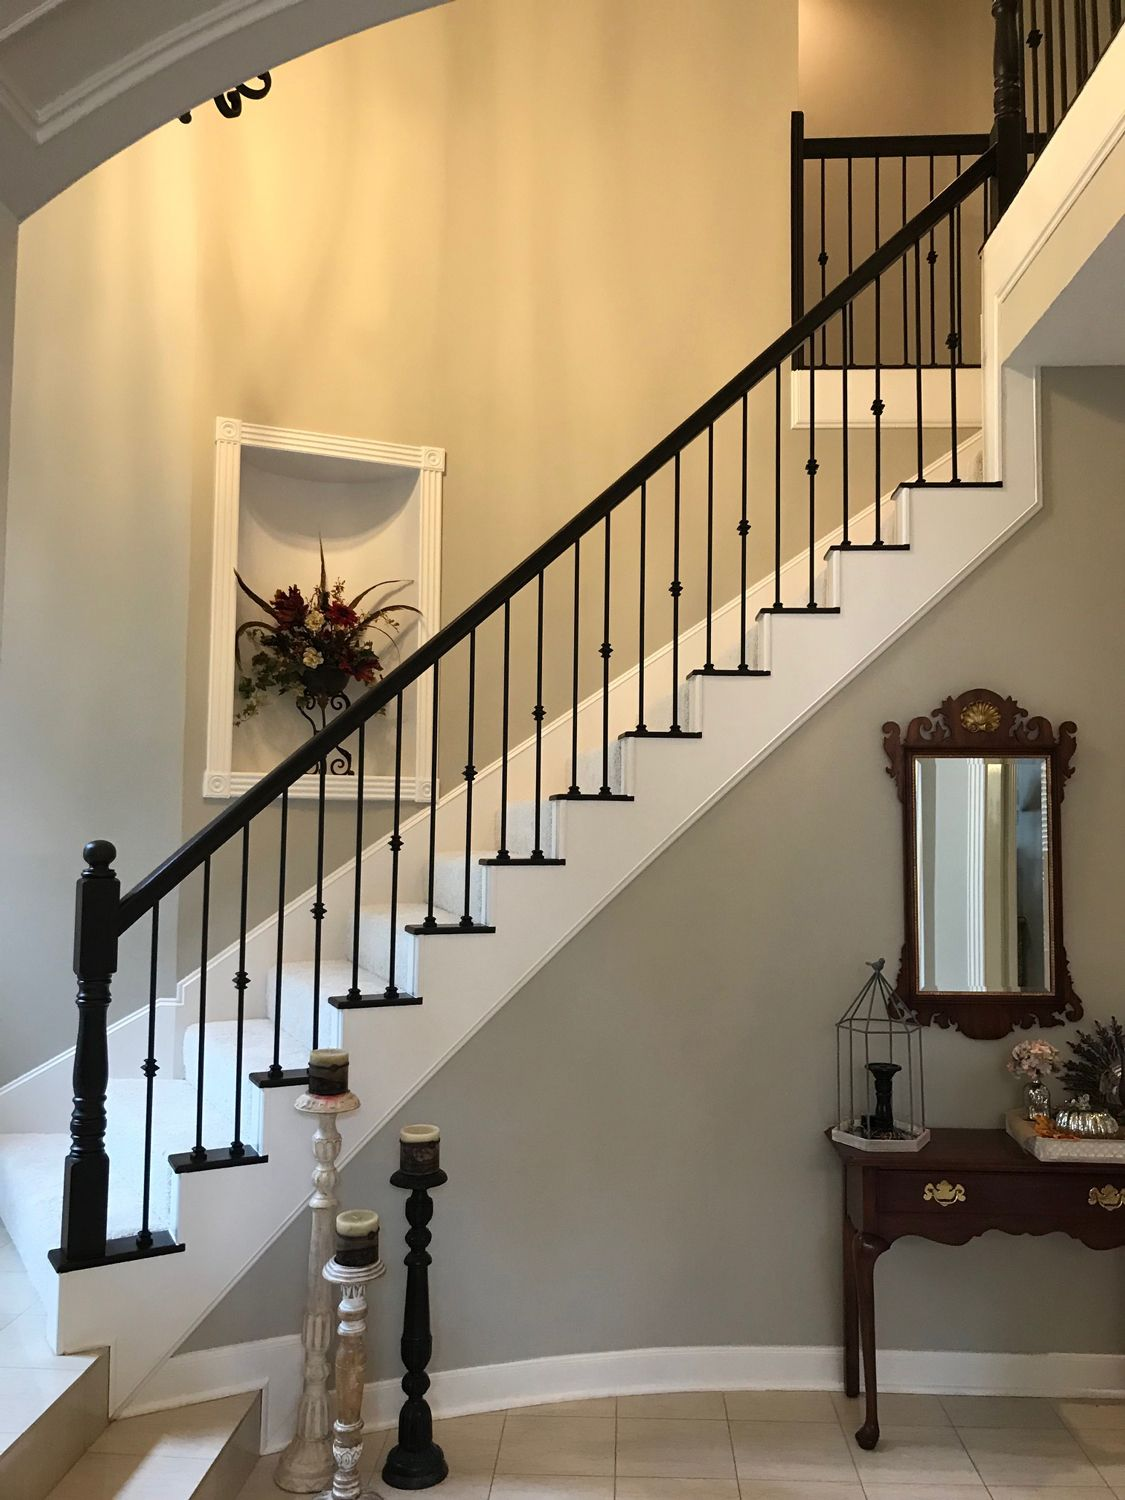 Our Powdercoated Wroughtiron Balusters Are Available In A Selection Of Finishes And Always Give Your St Stairs Balusters Staircase Remodel Staircase Design